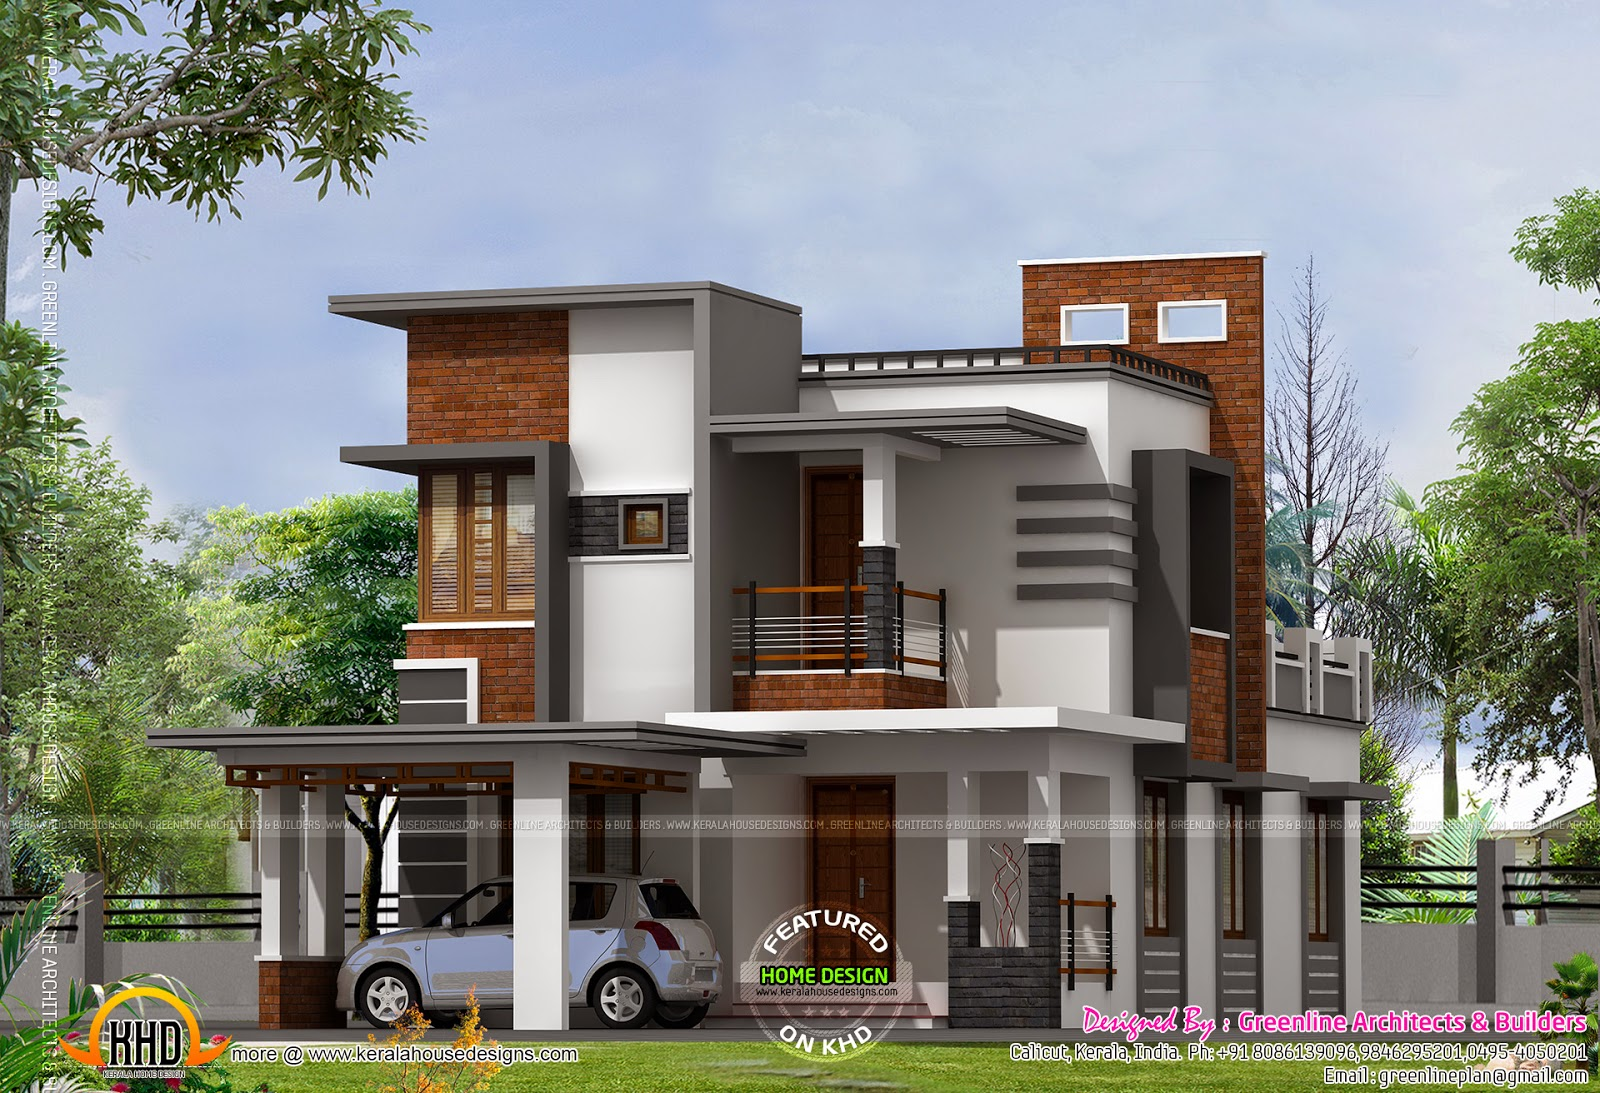 Low cost contemporary house kerala home design and floor for Modern house in kerala